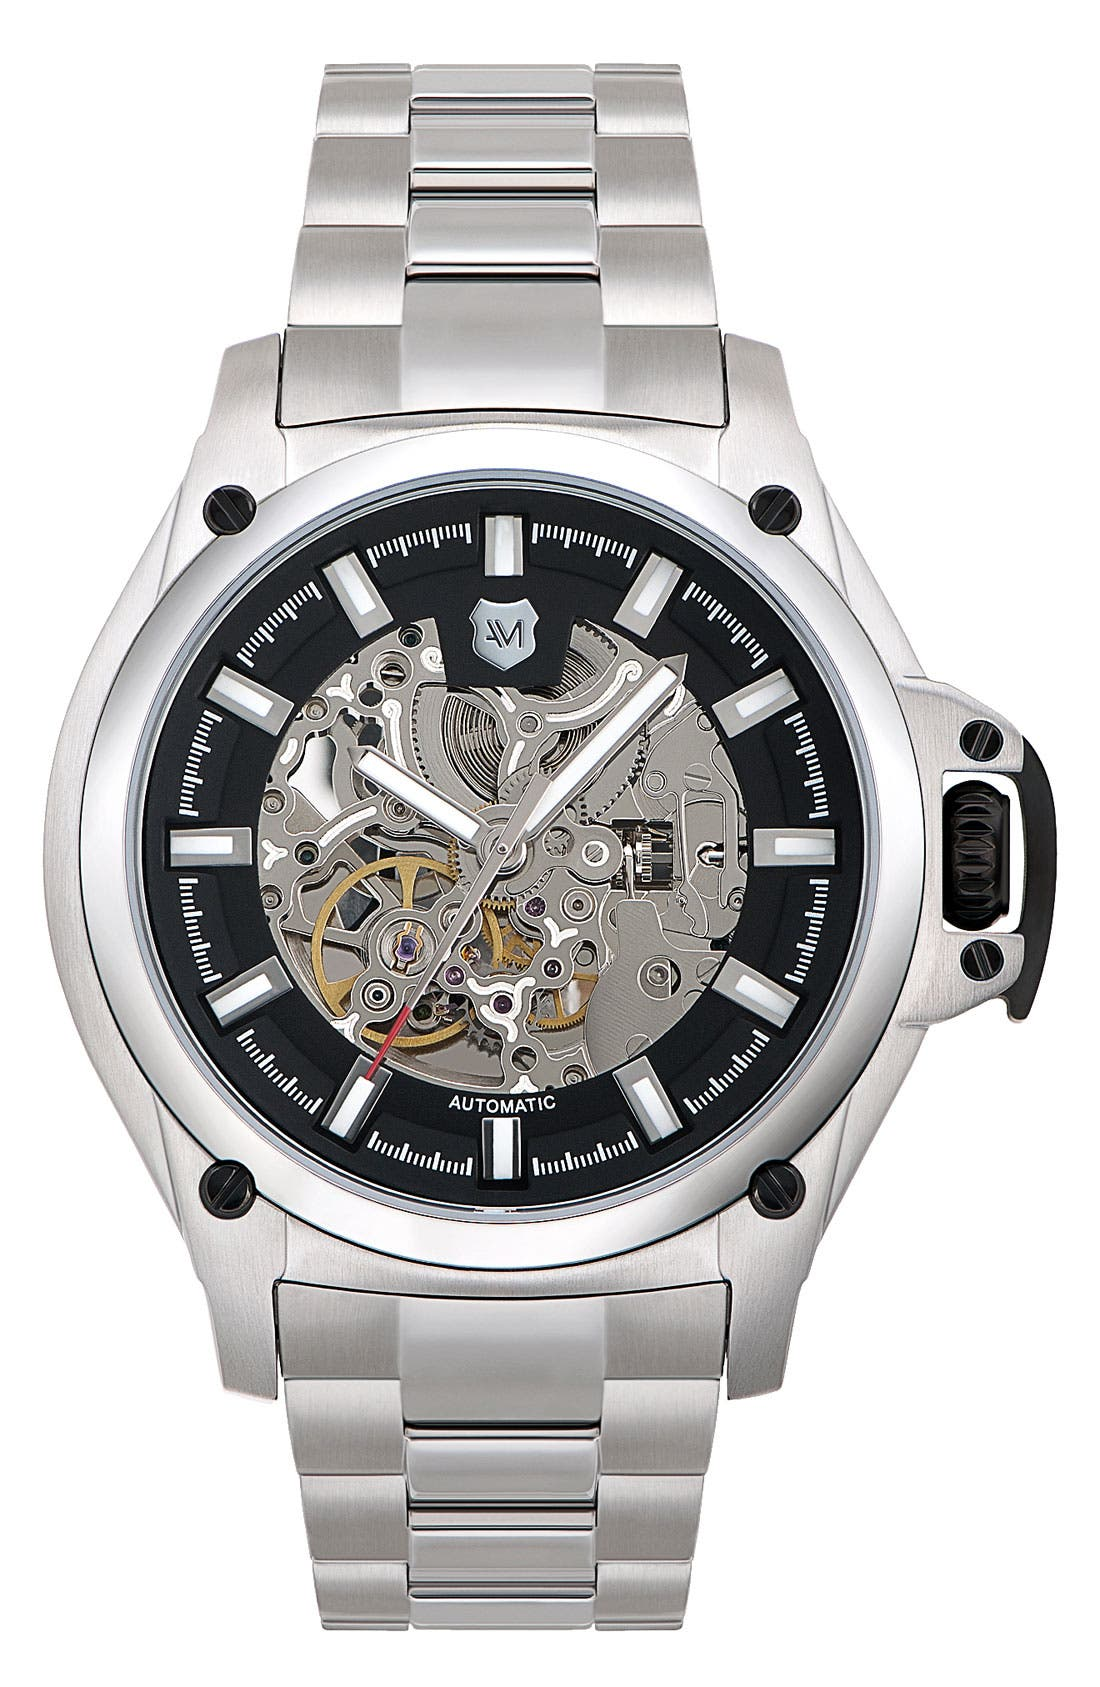 Alternate Image 1 Selected - Andrew Marc Watches 'G-III Pro' Automatic Bracelet Watch, 44mm